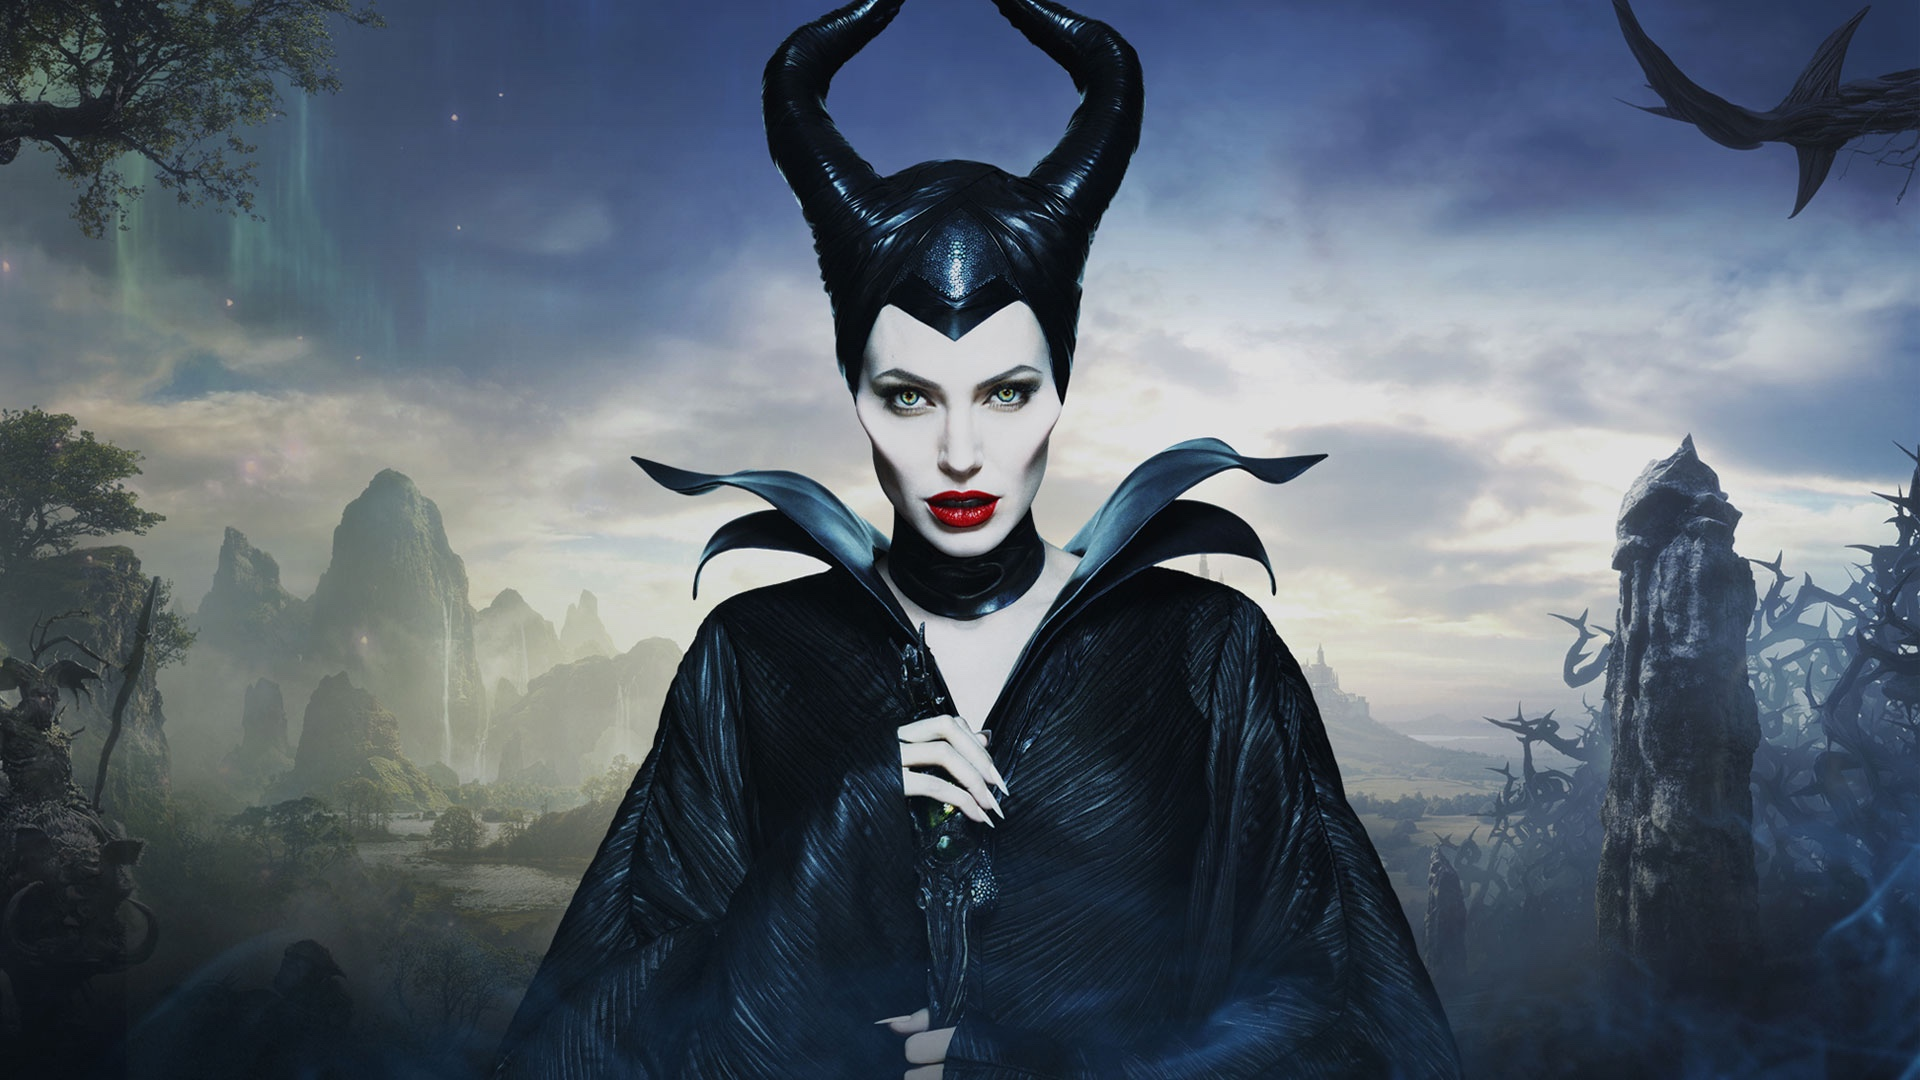 Maléfica [Maleficent, 2014] – ★